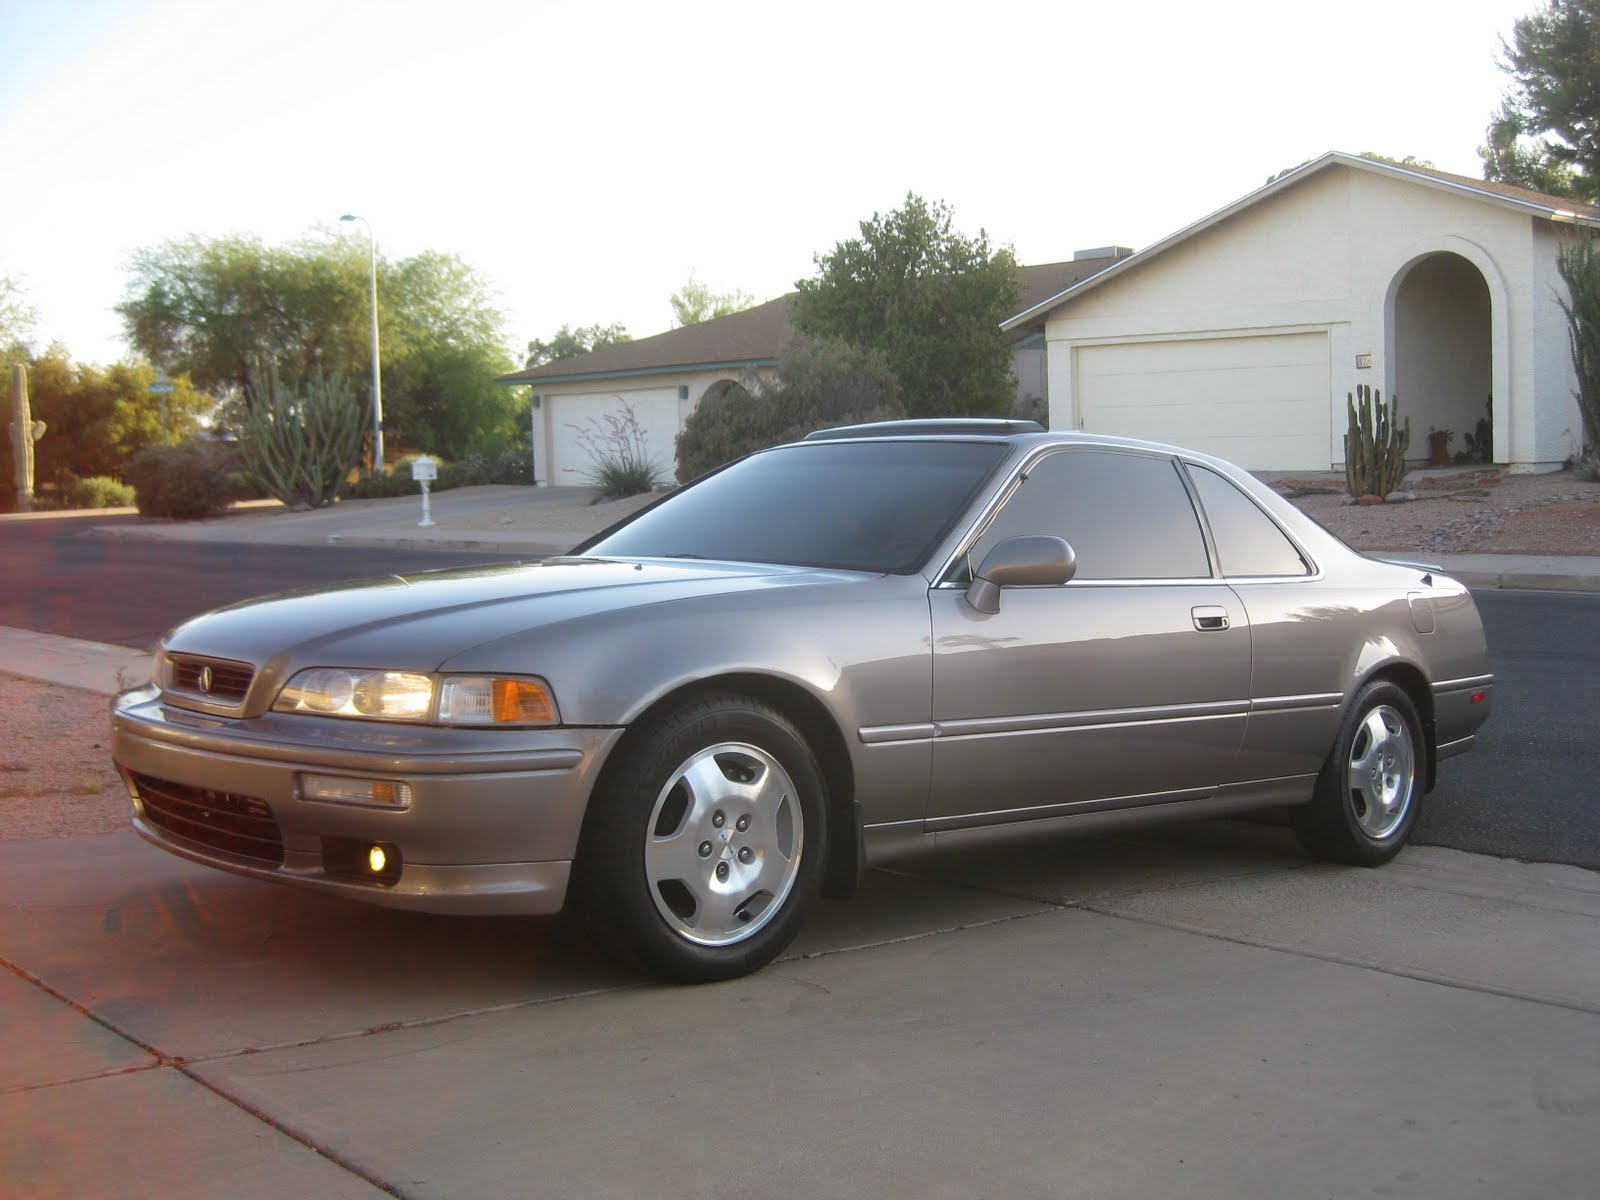 Tyson Hugie's 1994 Acura Legend Coupe. Not your typical 18-year old car.